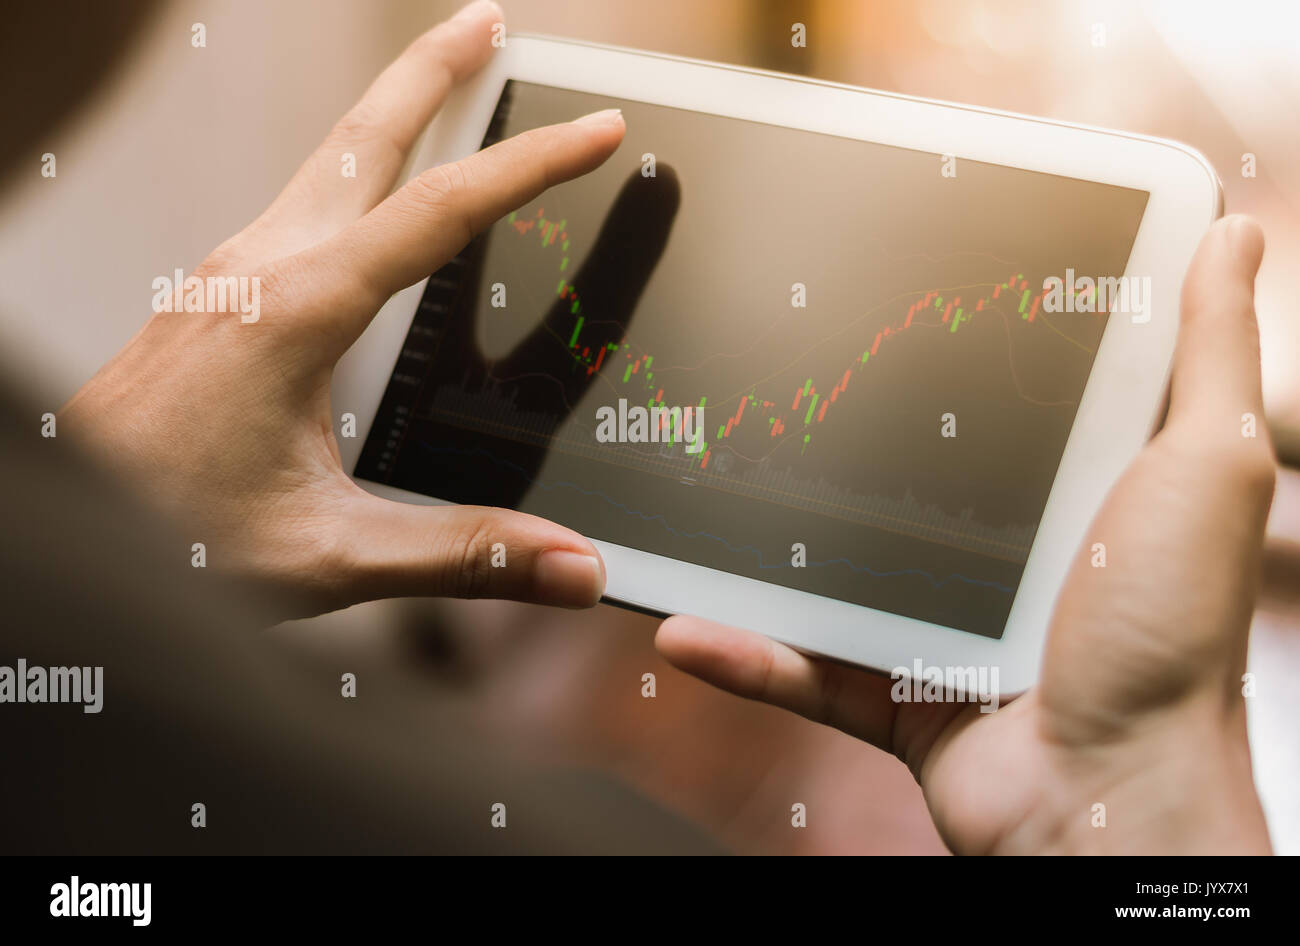 Business man checking stock market on tablet, smartphone - Stock Image